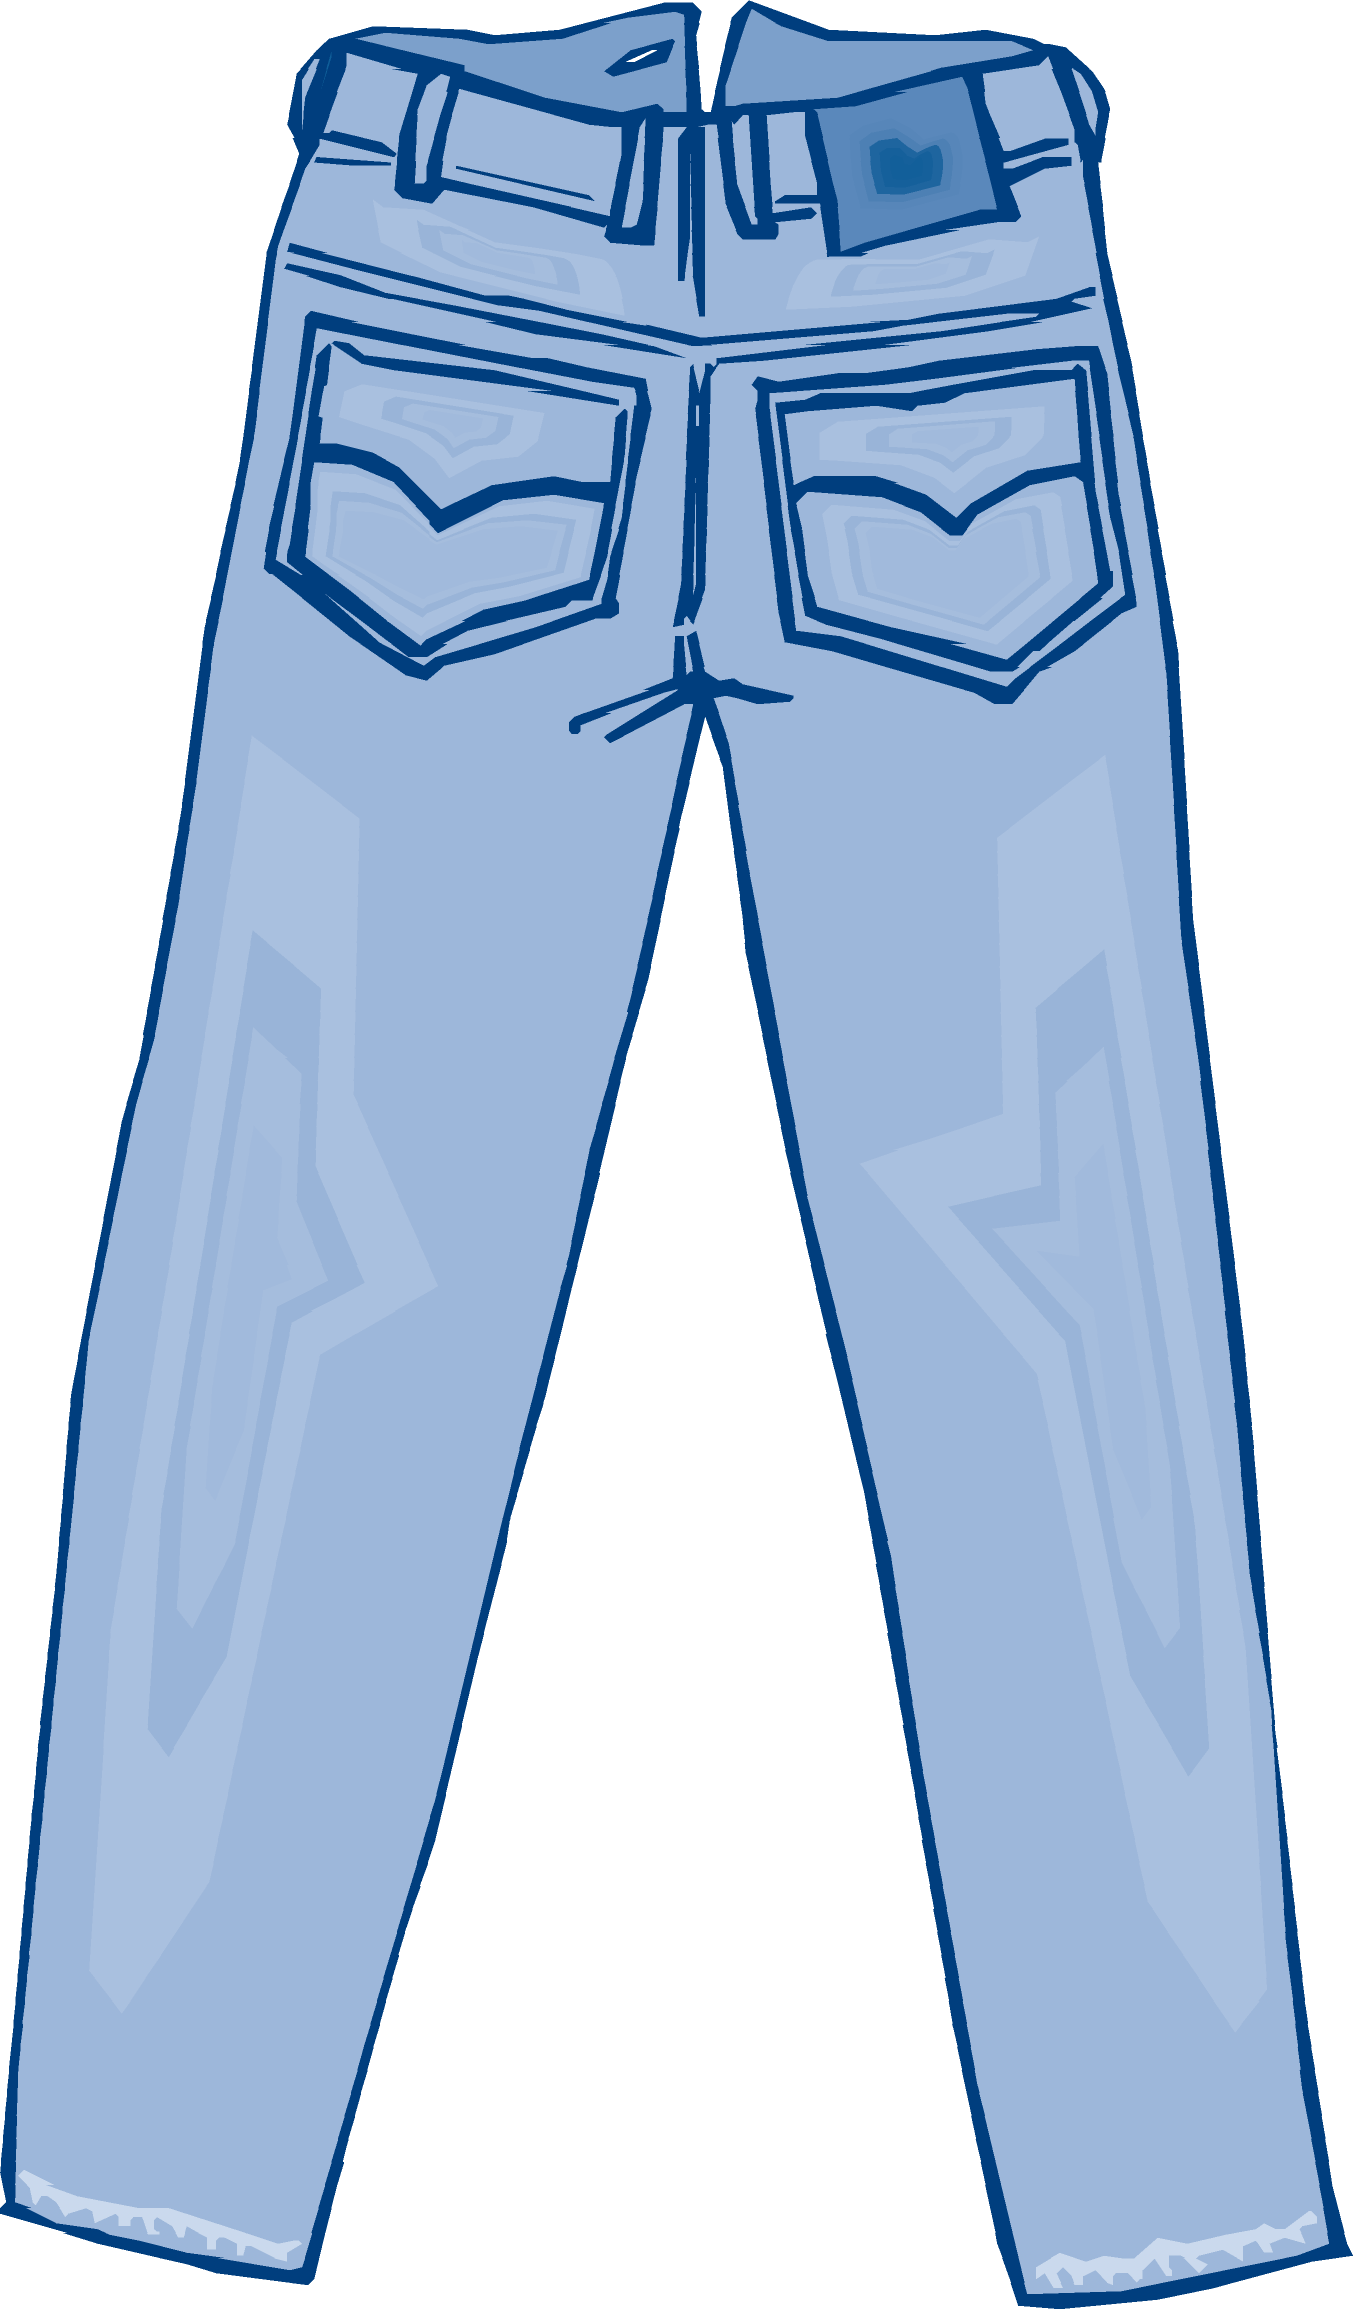 Jeans clipart #7, Download drawings